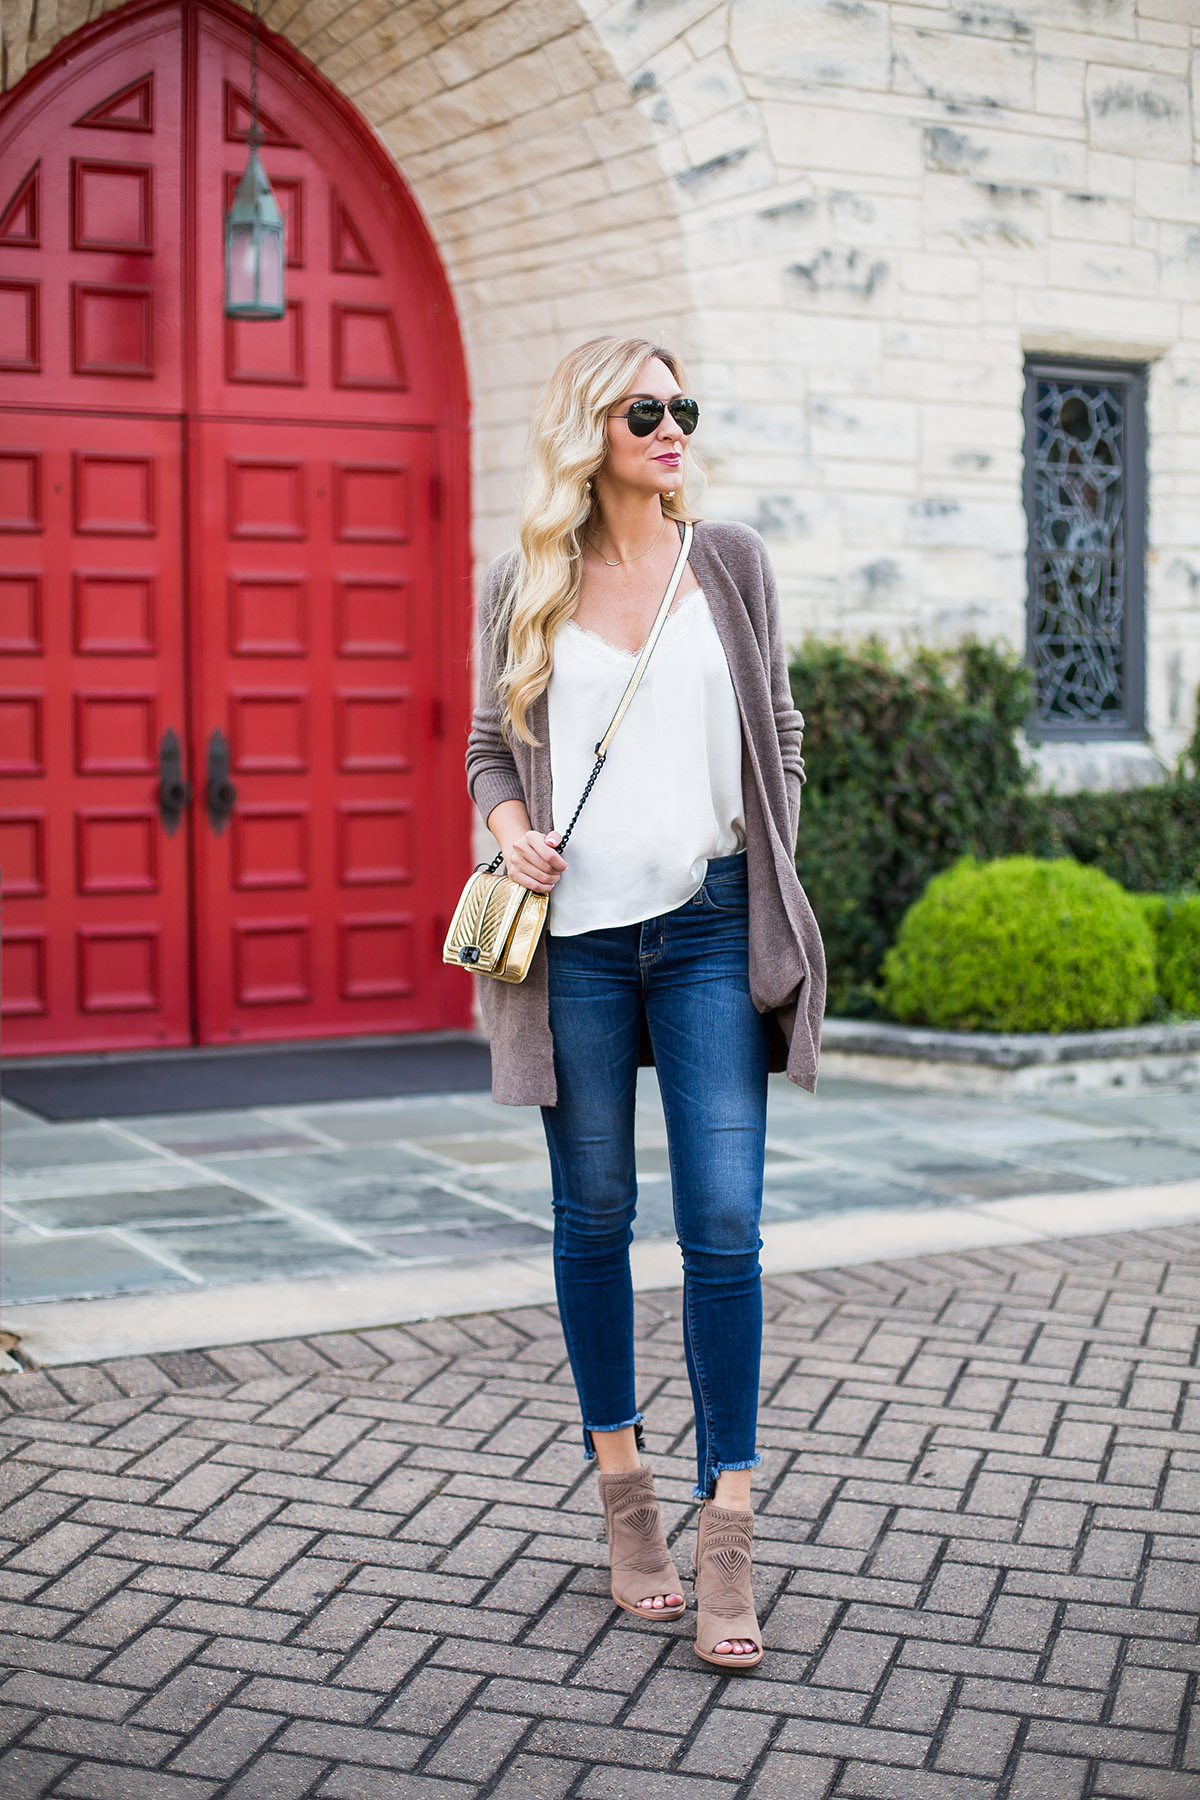 Fall basics to stock up on in the Nordstrom Anniversary Sale | Fall outfit ideas